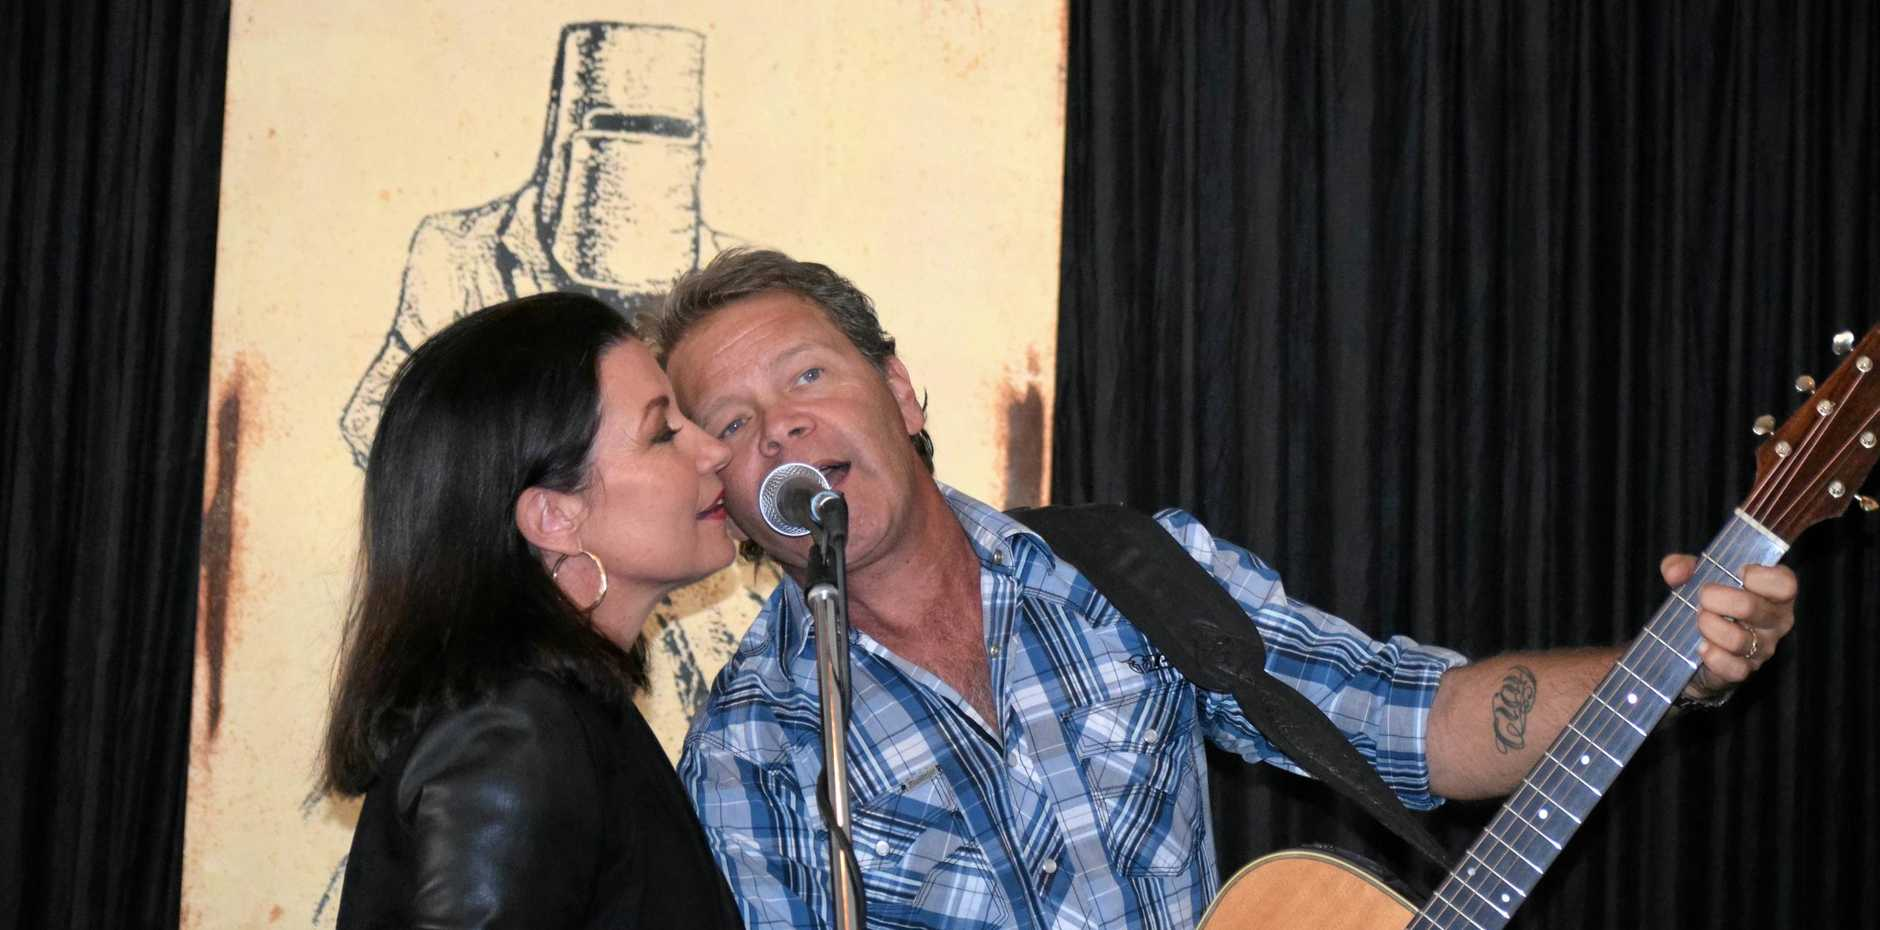 Muster Ambassador Troy Cassar-Daley performs with wife Laurel at the Gympie Muster 2018 Partner Thank You Function.